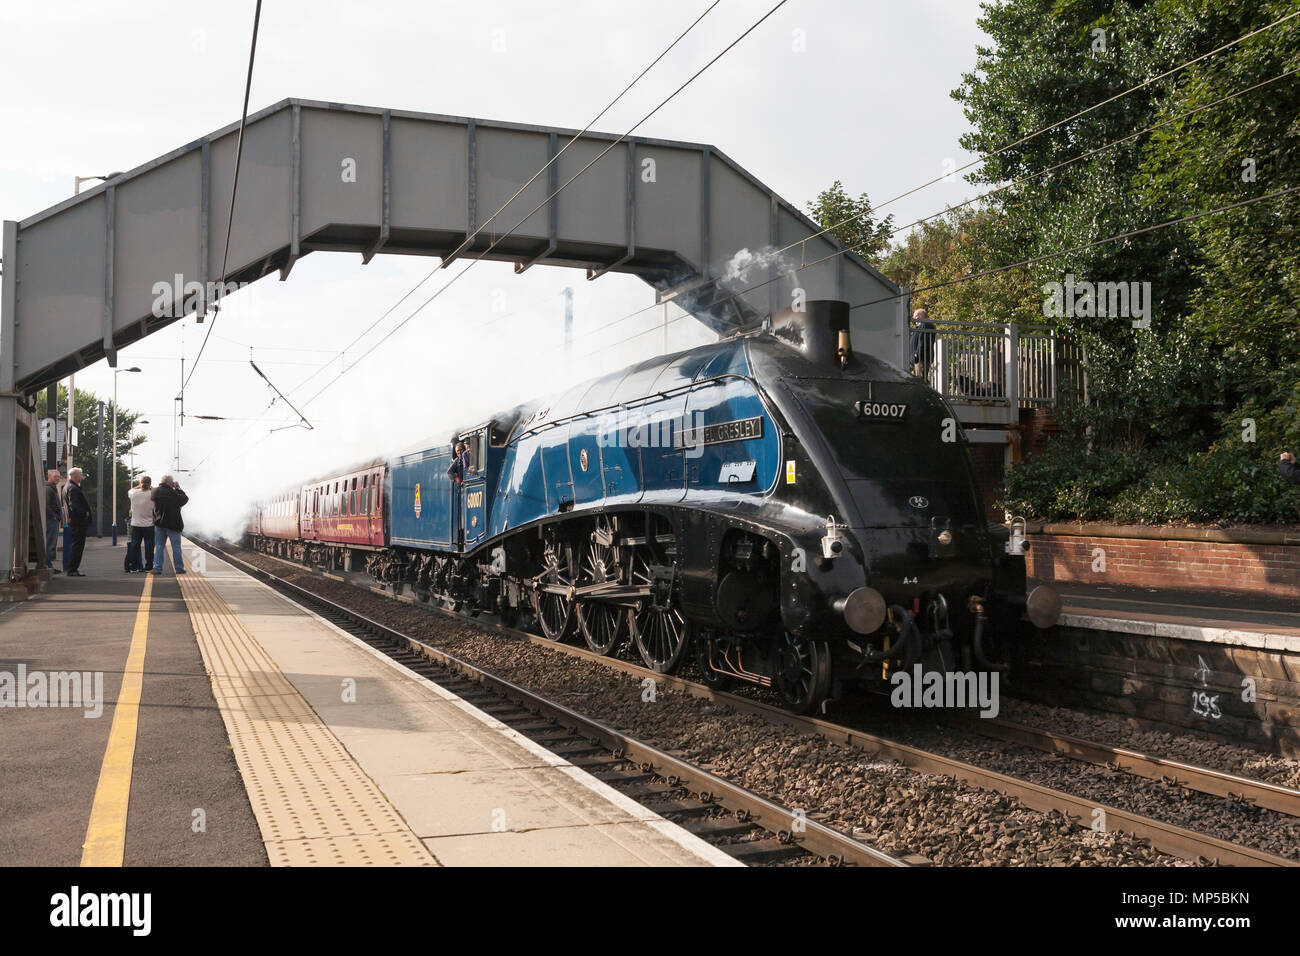 ex-lner-a4-steam-locomotive-60007-sir-ni